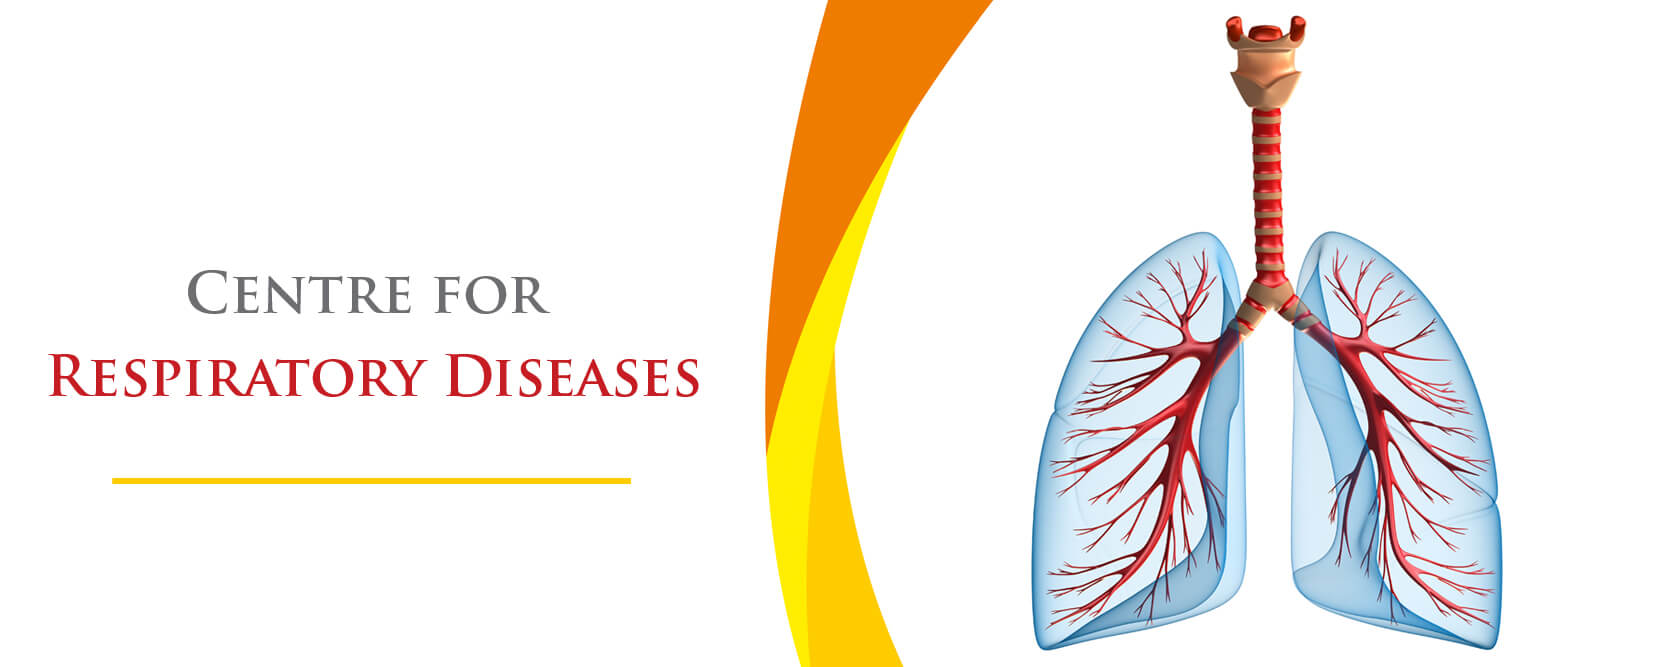 Centere for respiratory diseases